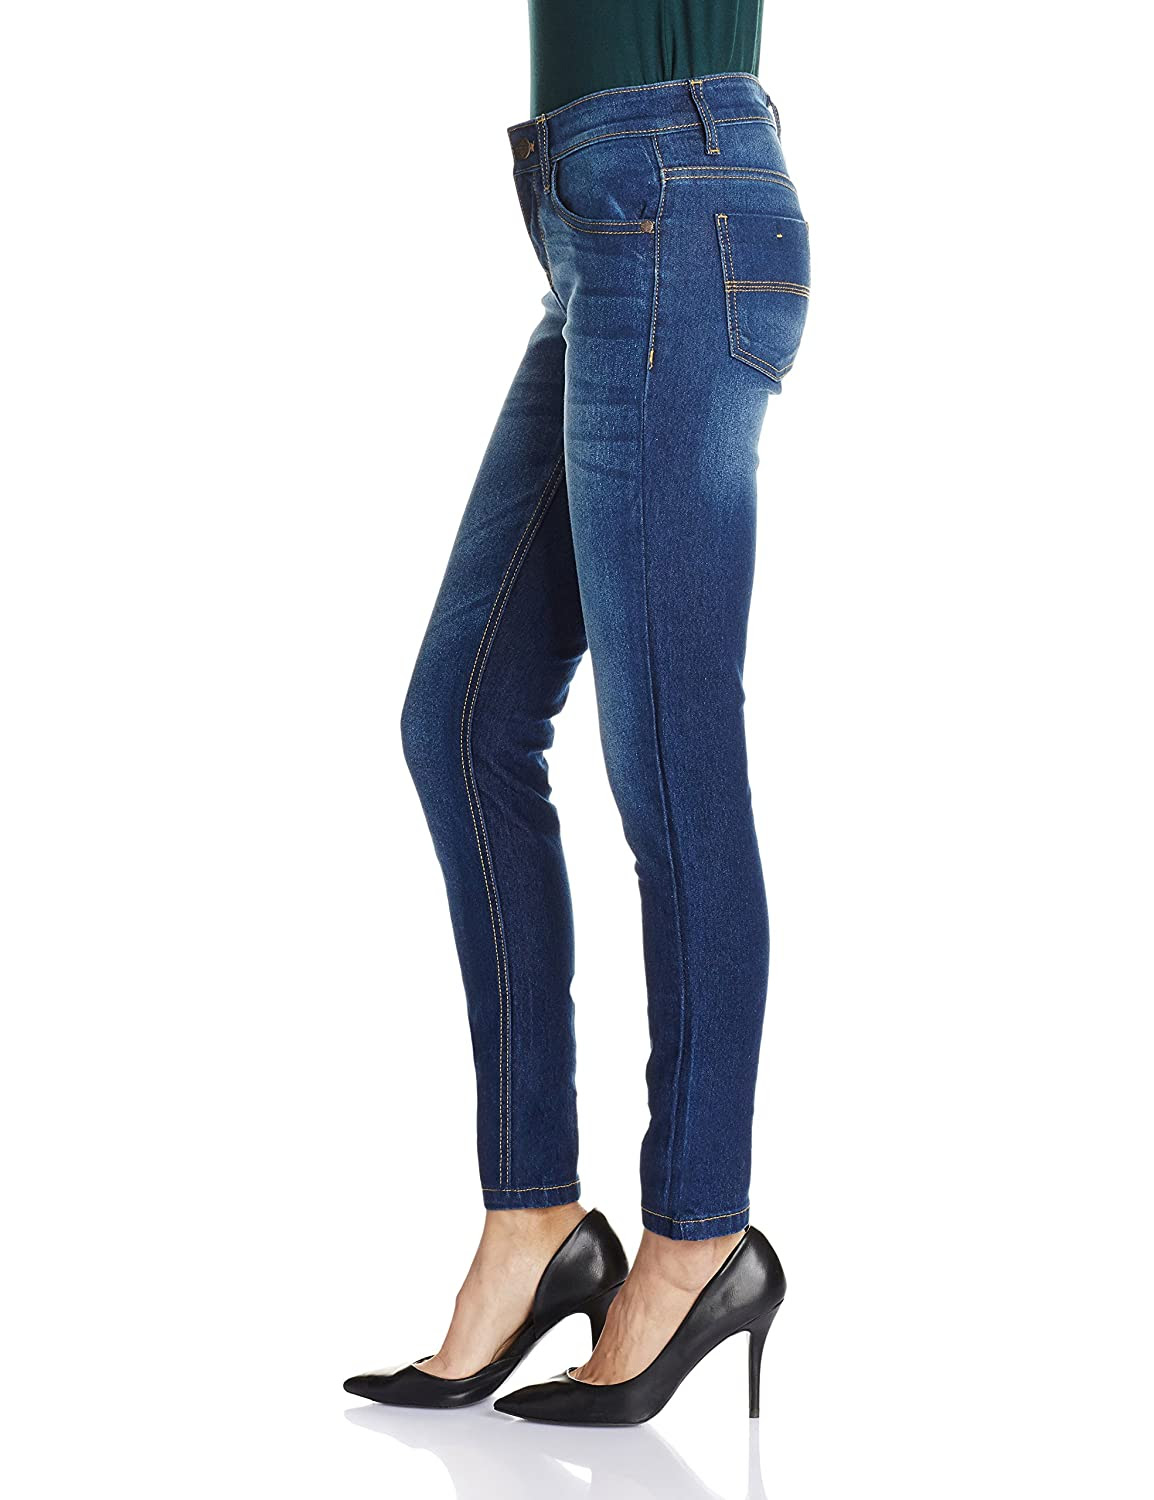 Deals on Newport Women's Skinny Jeans